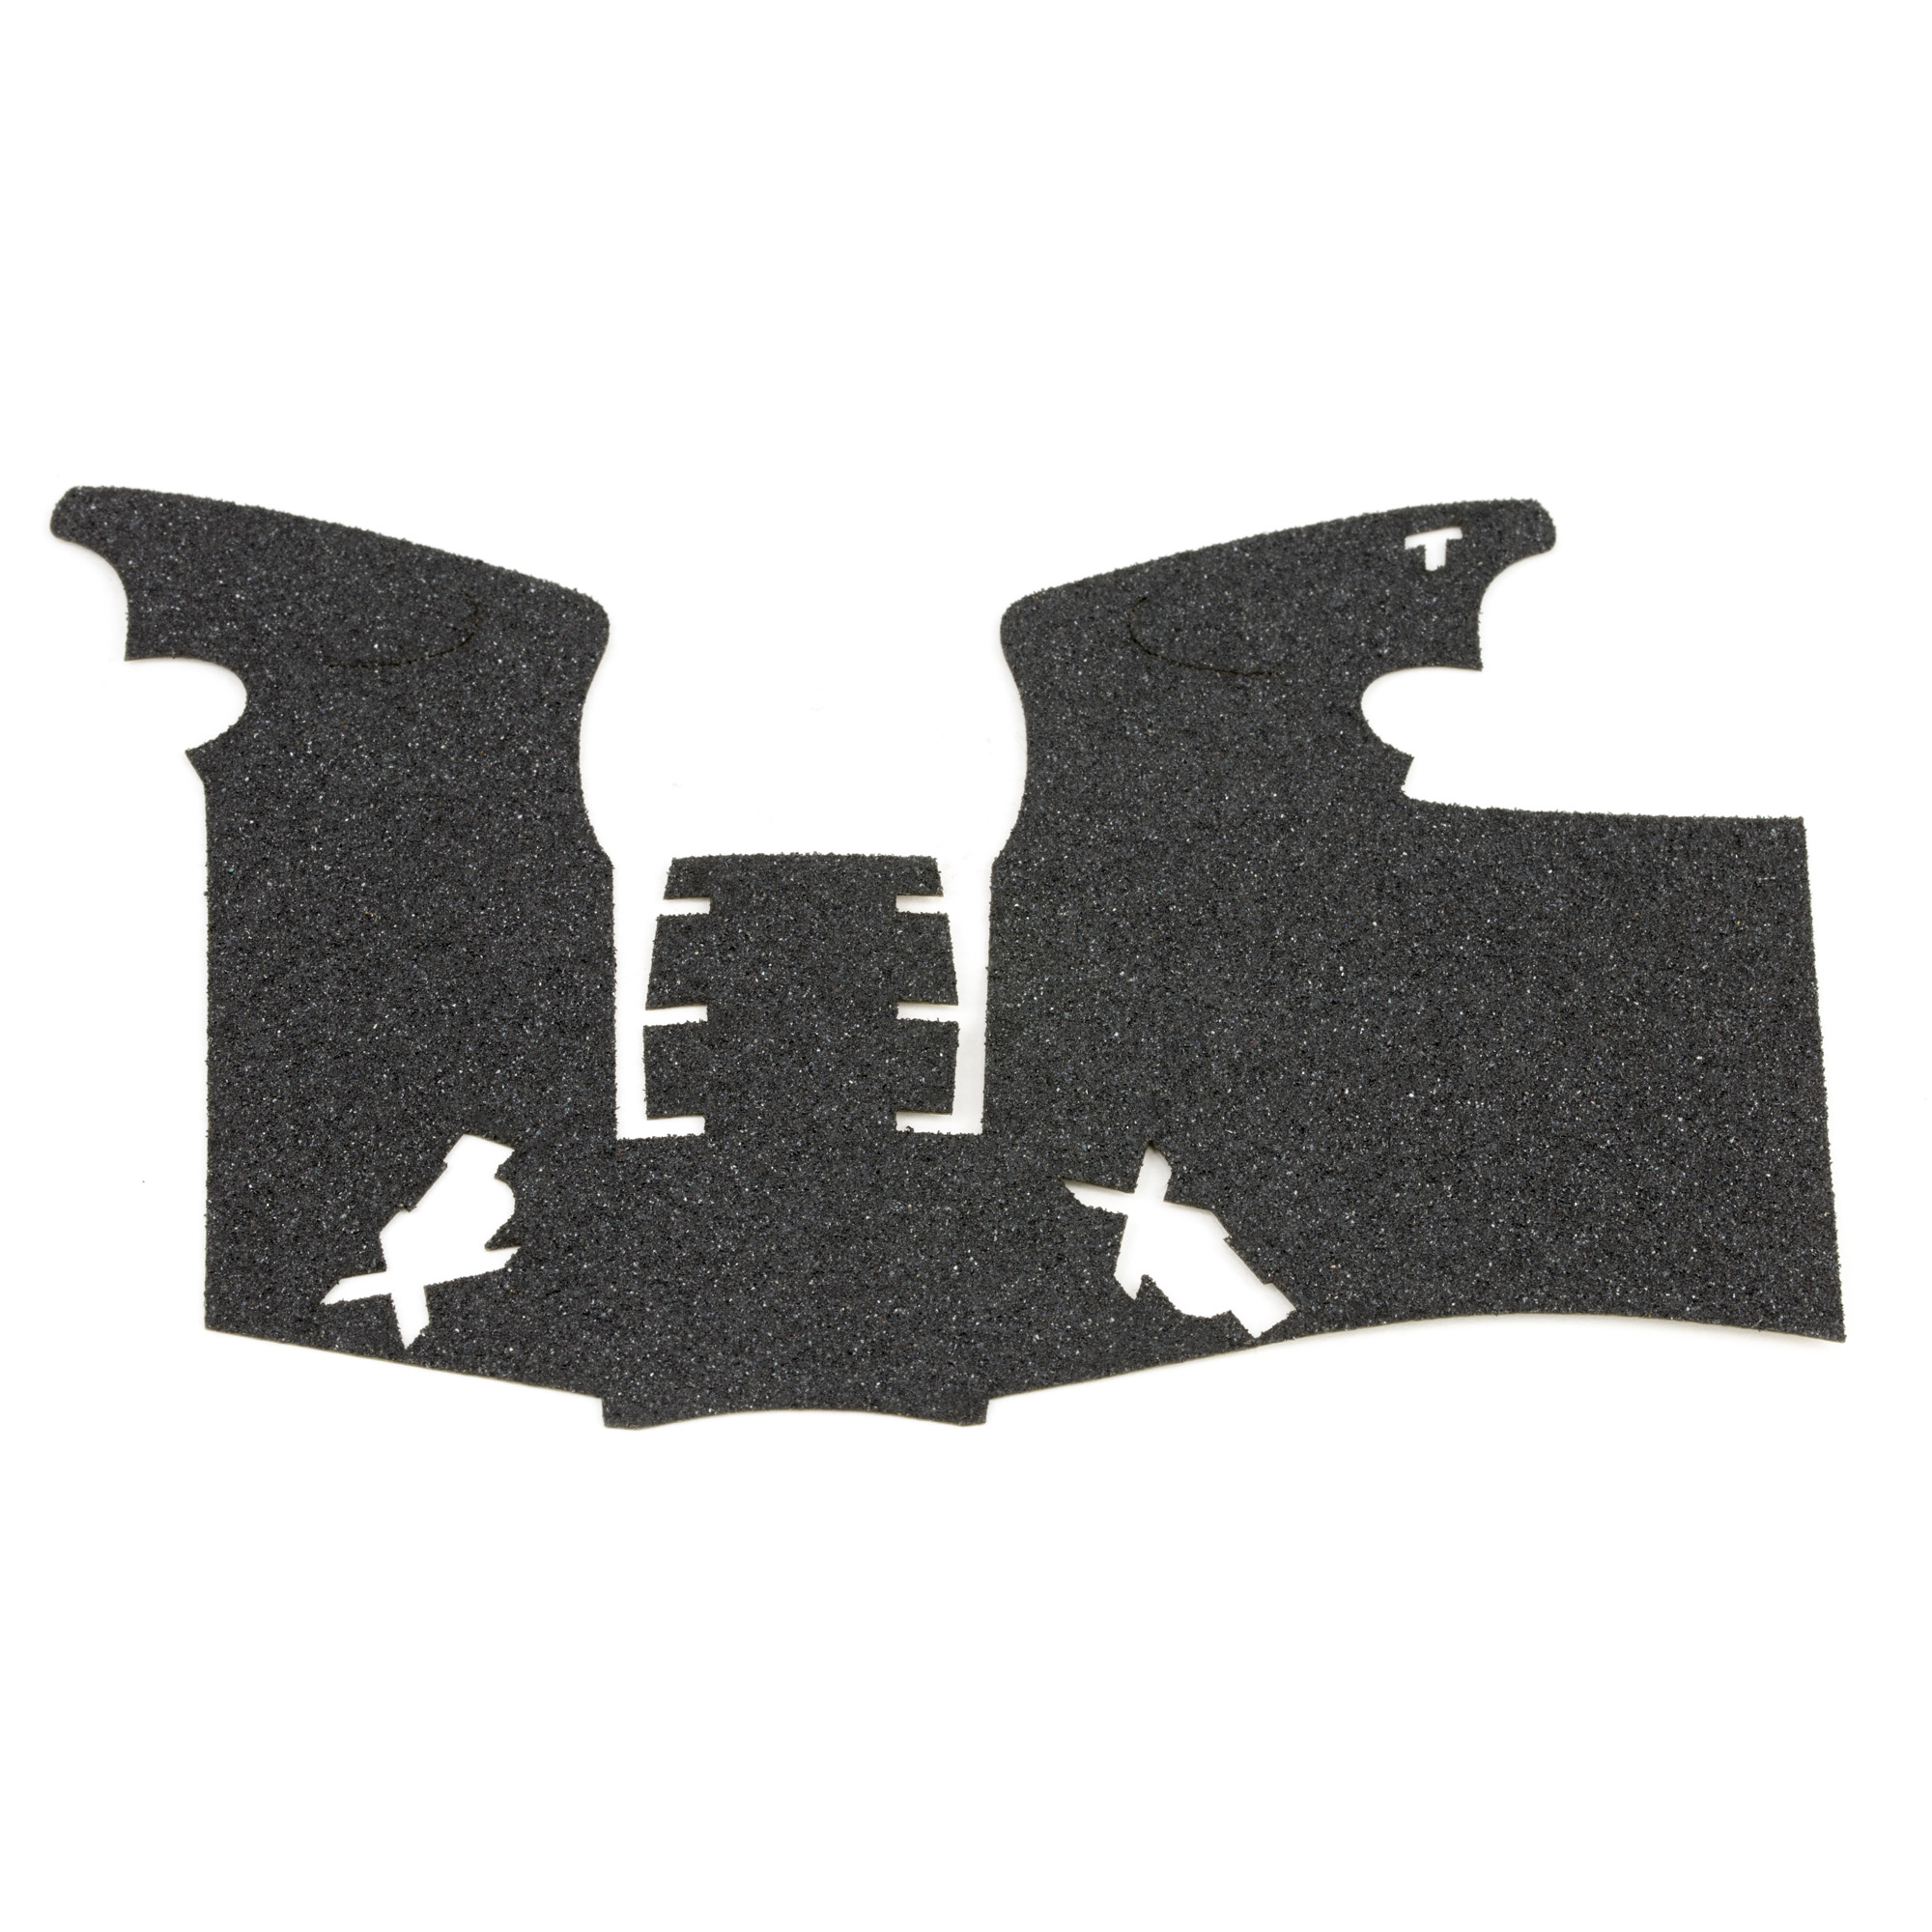 """TALON Grips for Full Size Springfield XD(M) 9mm"""" .40 with a Small Backstrap. This grip is in the granulate texture and offers full side panel coverage including the thumb rest area"""" full coverage under the trigger guard"""" and full coverage on the backstrap. This has specific graphic cutouts for the XD(M) logo. Confirm backstrap size installed on the firearm prior to purchase."""